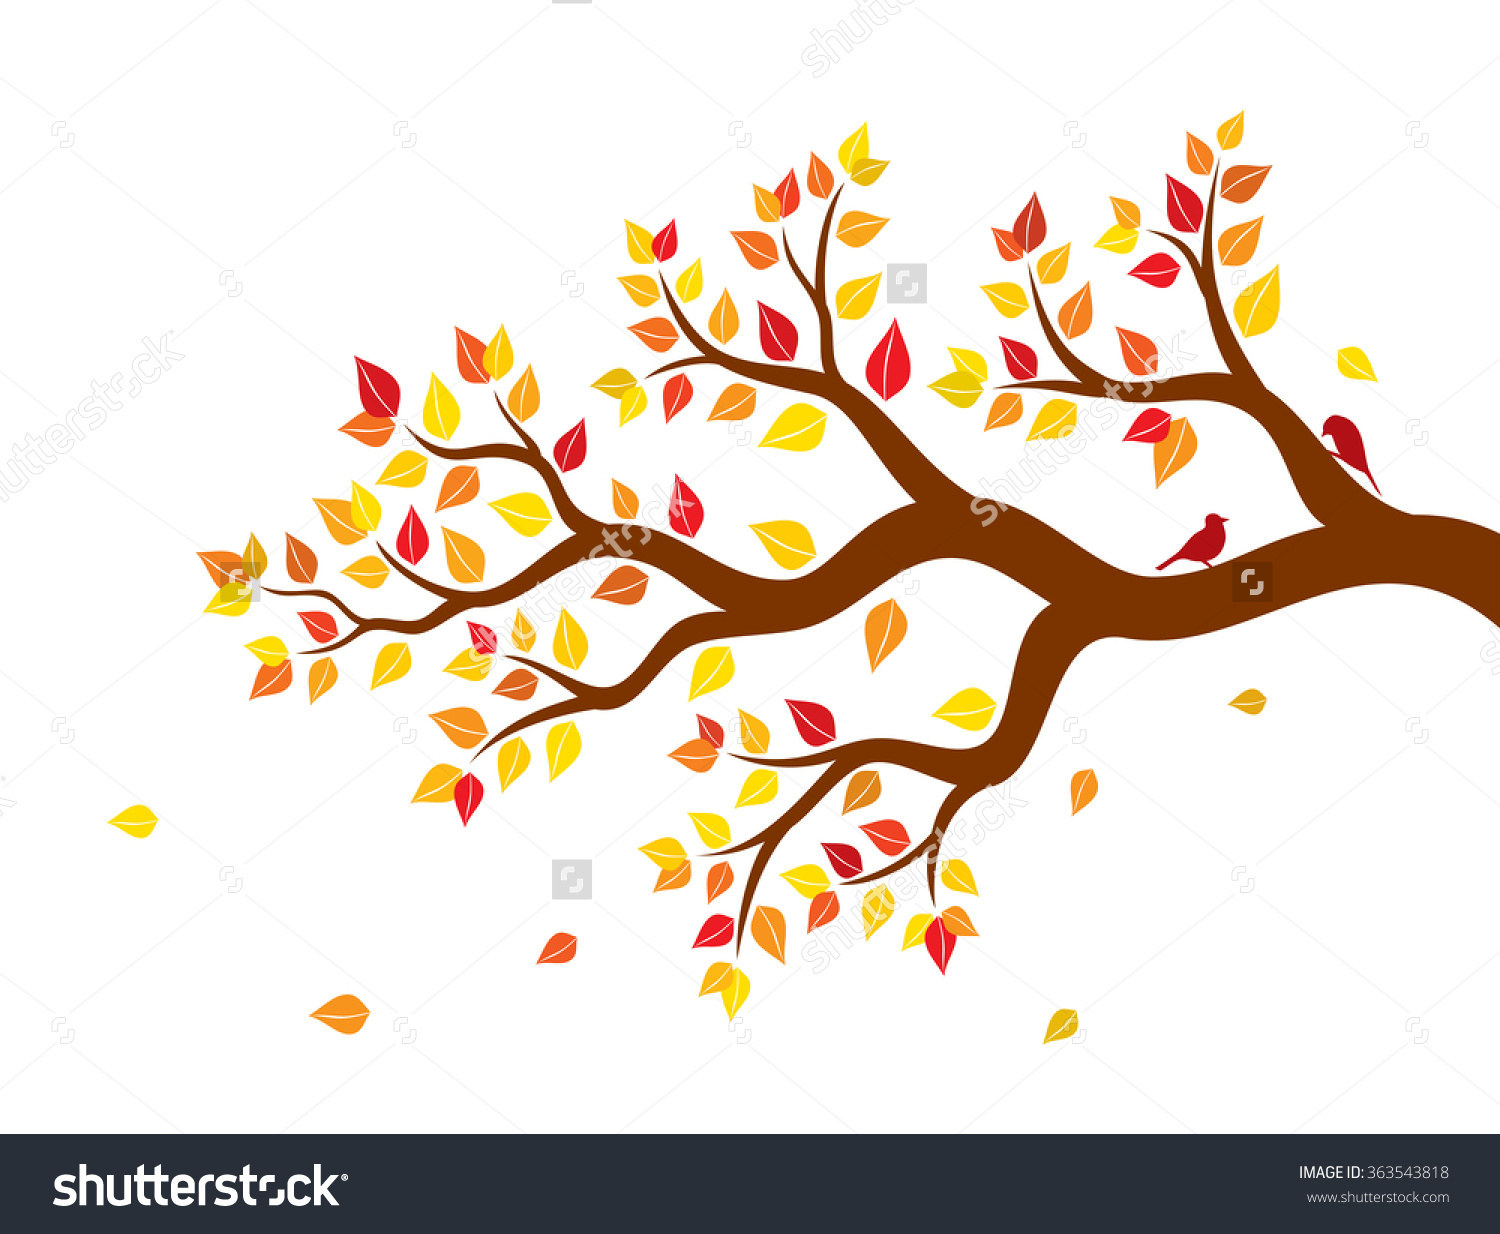 Vector Illustration Of Autumn Tree Branch With Colorful Leaves And.